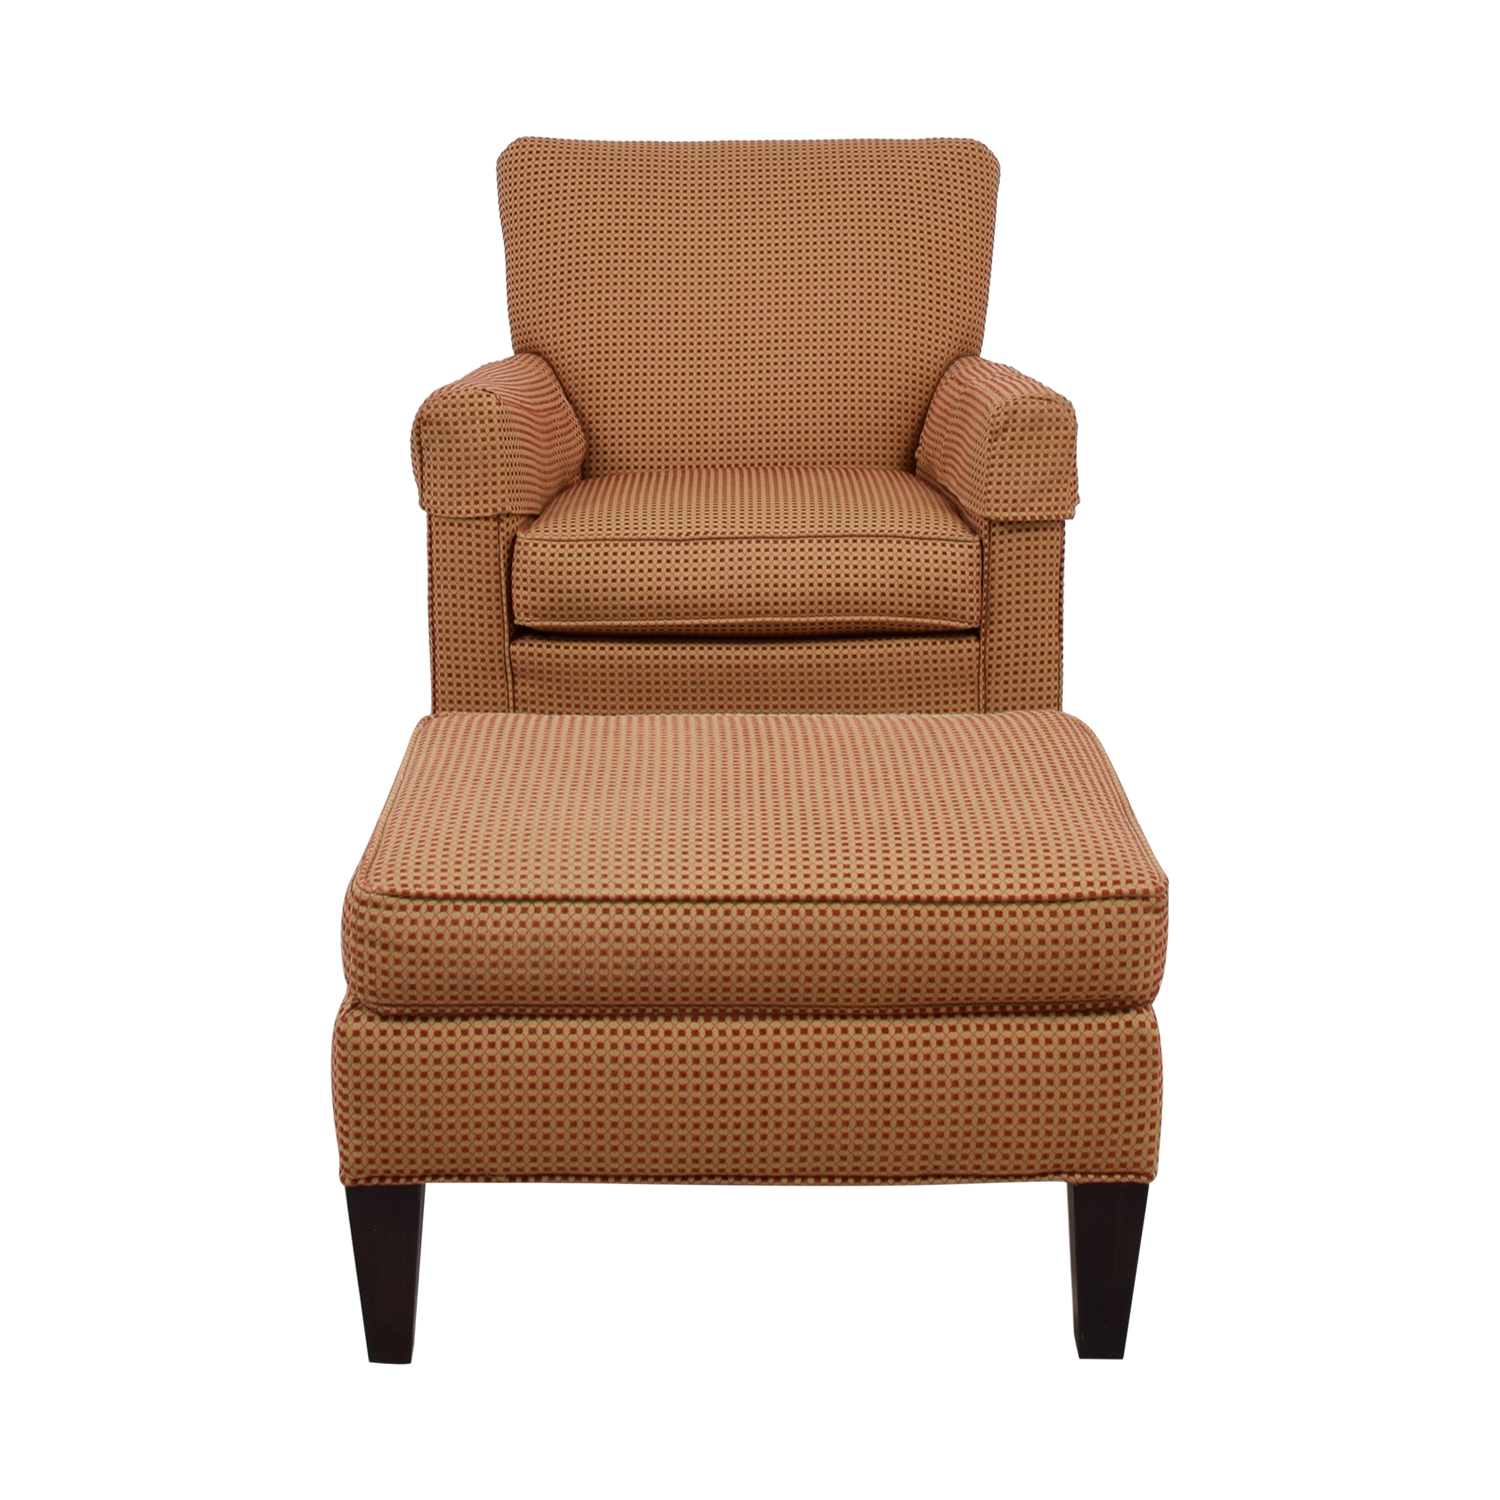 Ethan Allen Ethan Allen Beige and Red Arm Chair with Ottoman coupon